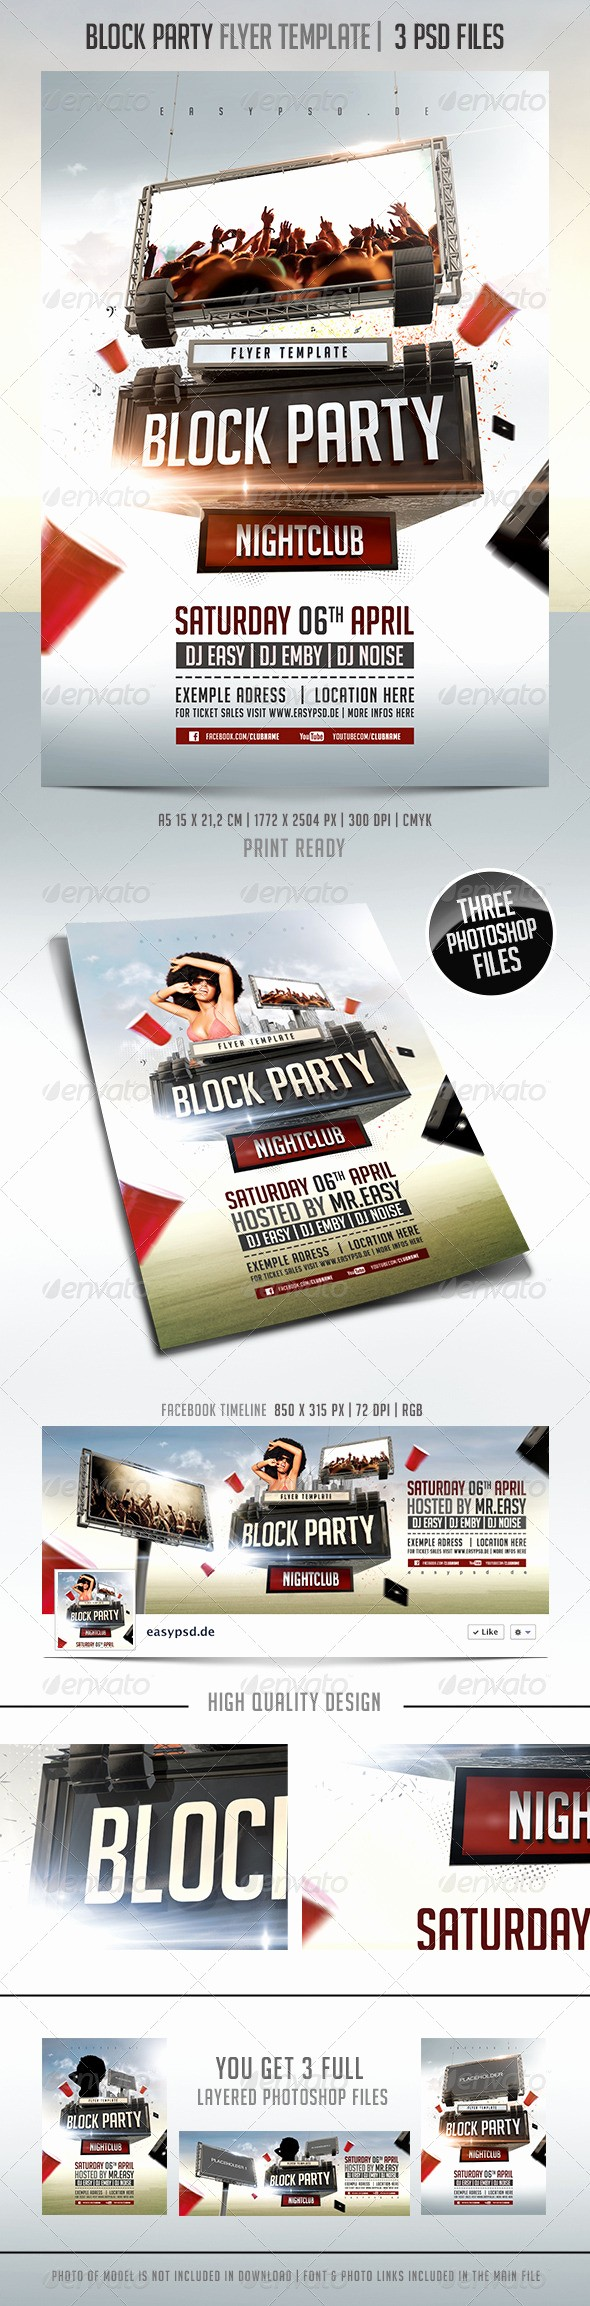 Block Party Flyer Templates Free Awesome Block Party Flyer Template